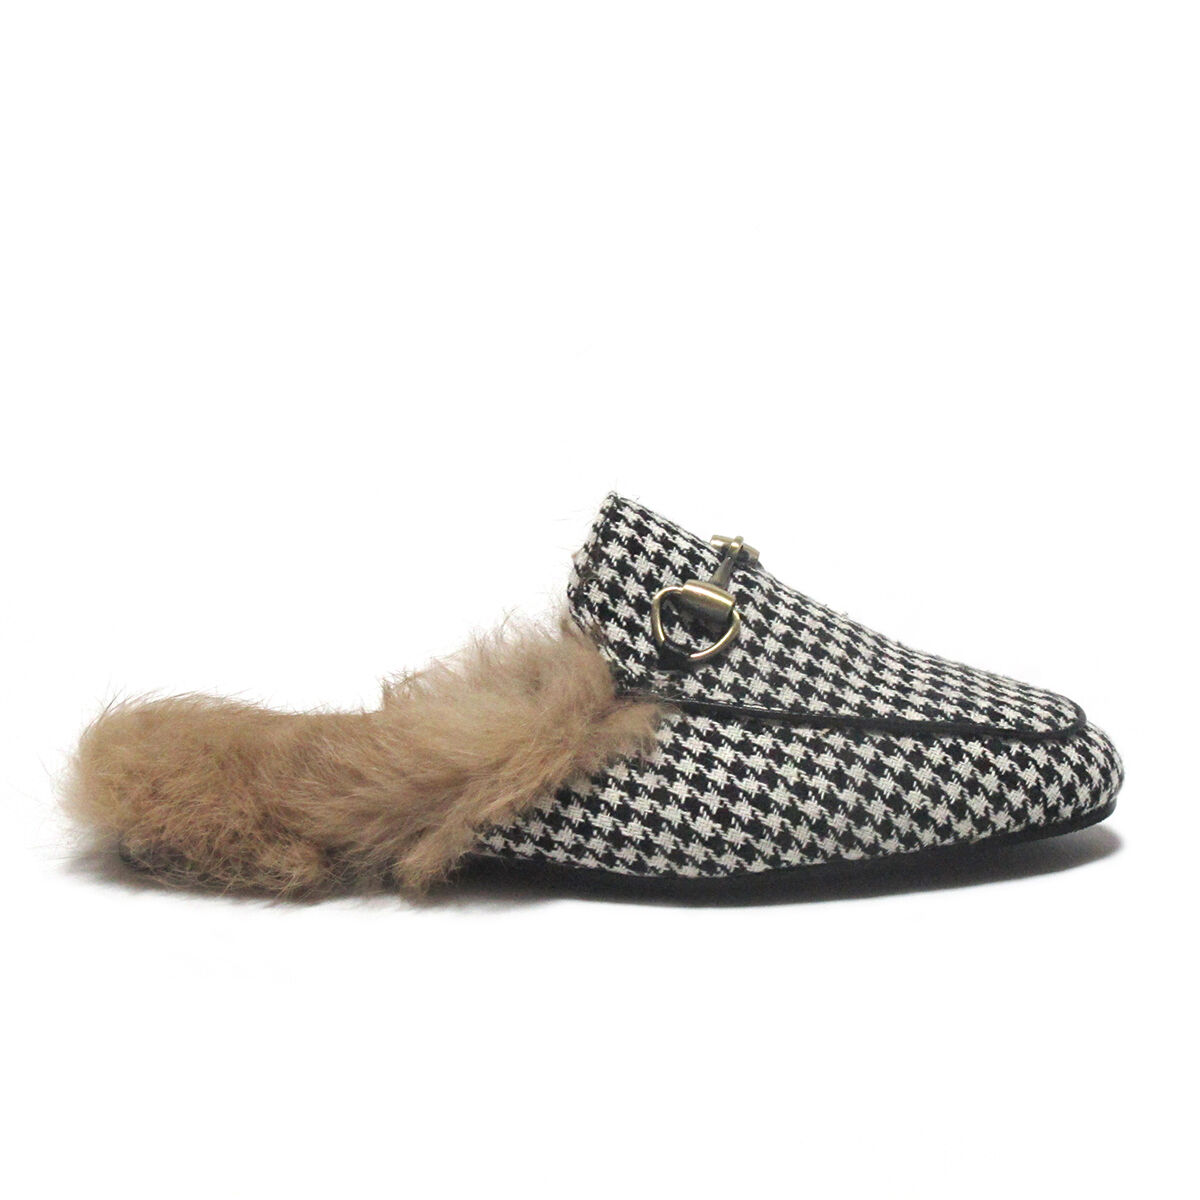 Horsebit Detailed Rabbit-Fur Lined Houndstooth Princetown Slide Loafers Slippers Slippers Slippers d2caa3